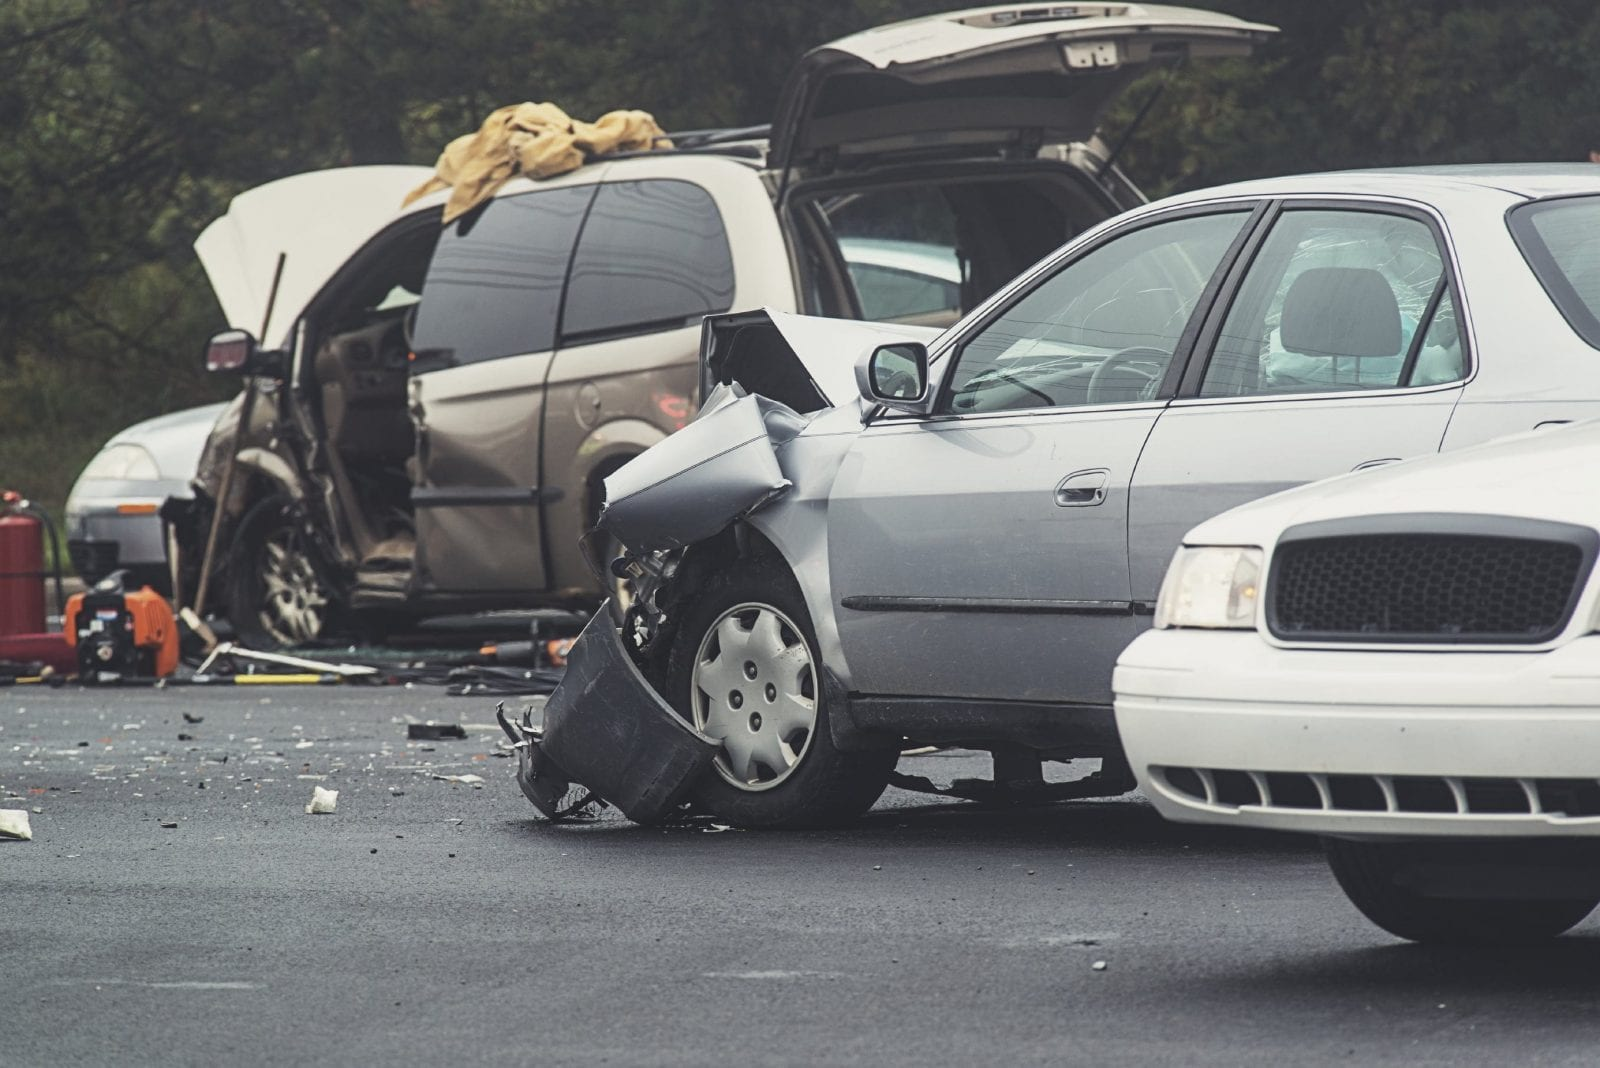 Odessa Car Accident Lawyer Discusses Collision Just South Of Odessa